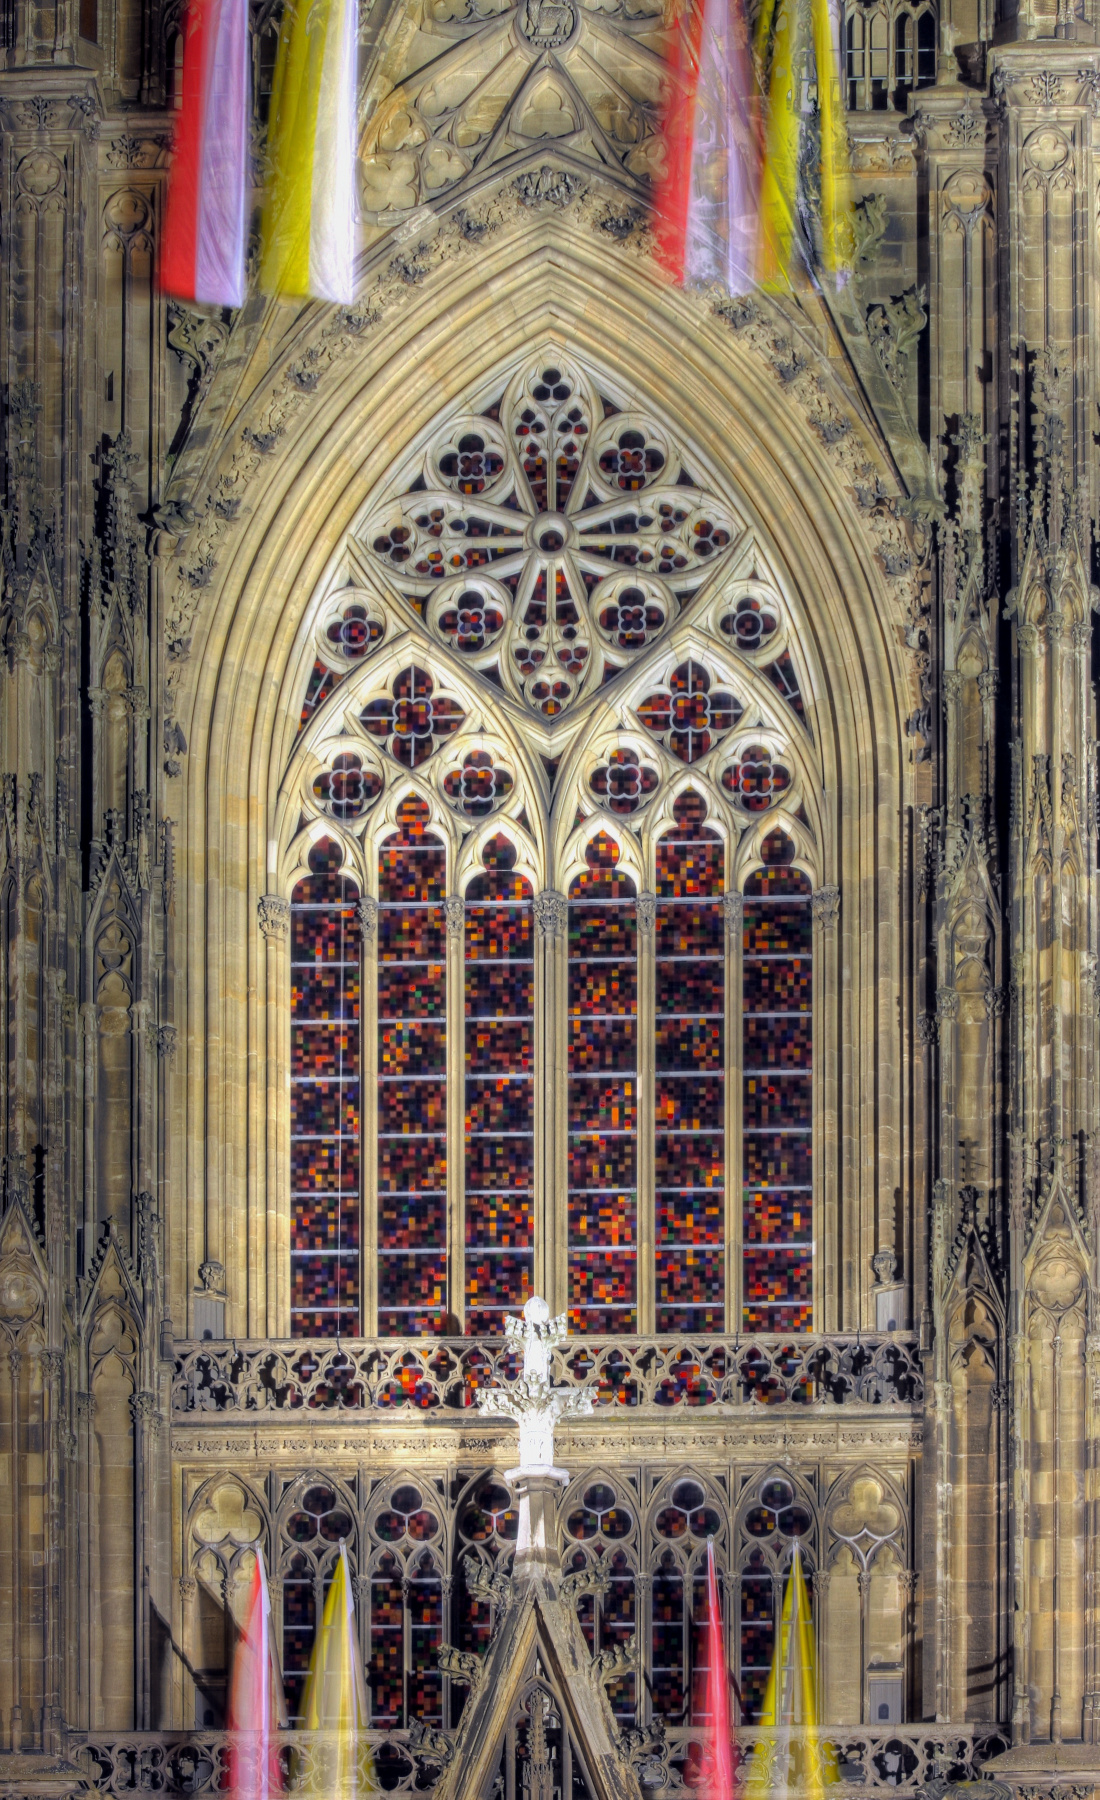 Gerhard Richter. Stained glass window of Cologne Cathedral